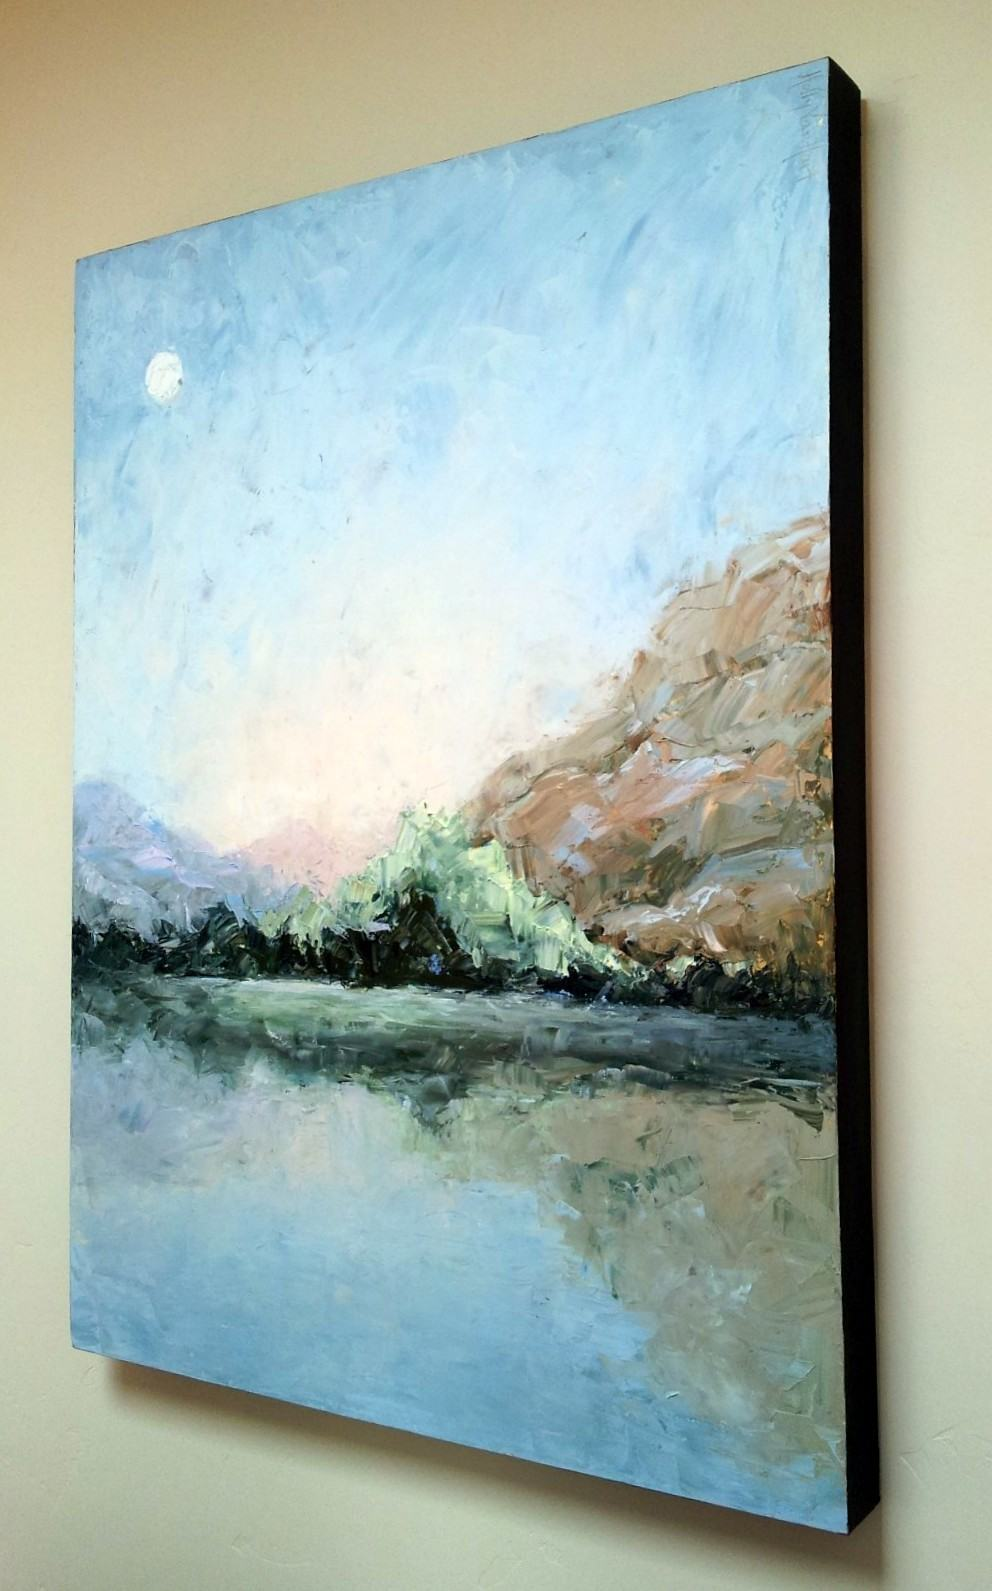 Oil Painting By Holly Van Hart, Blue, Abstract Landscape, Lake, Fallen Leaf Lake